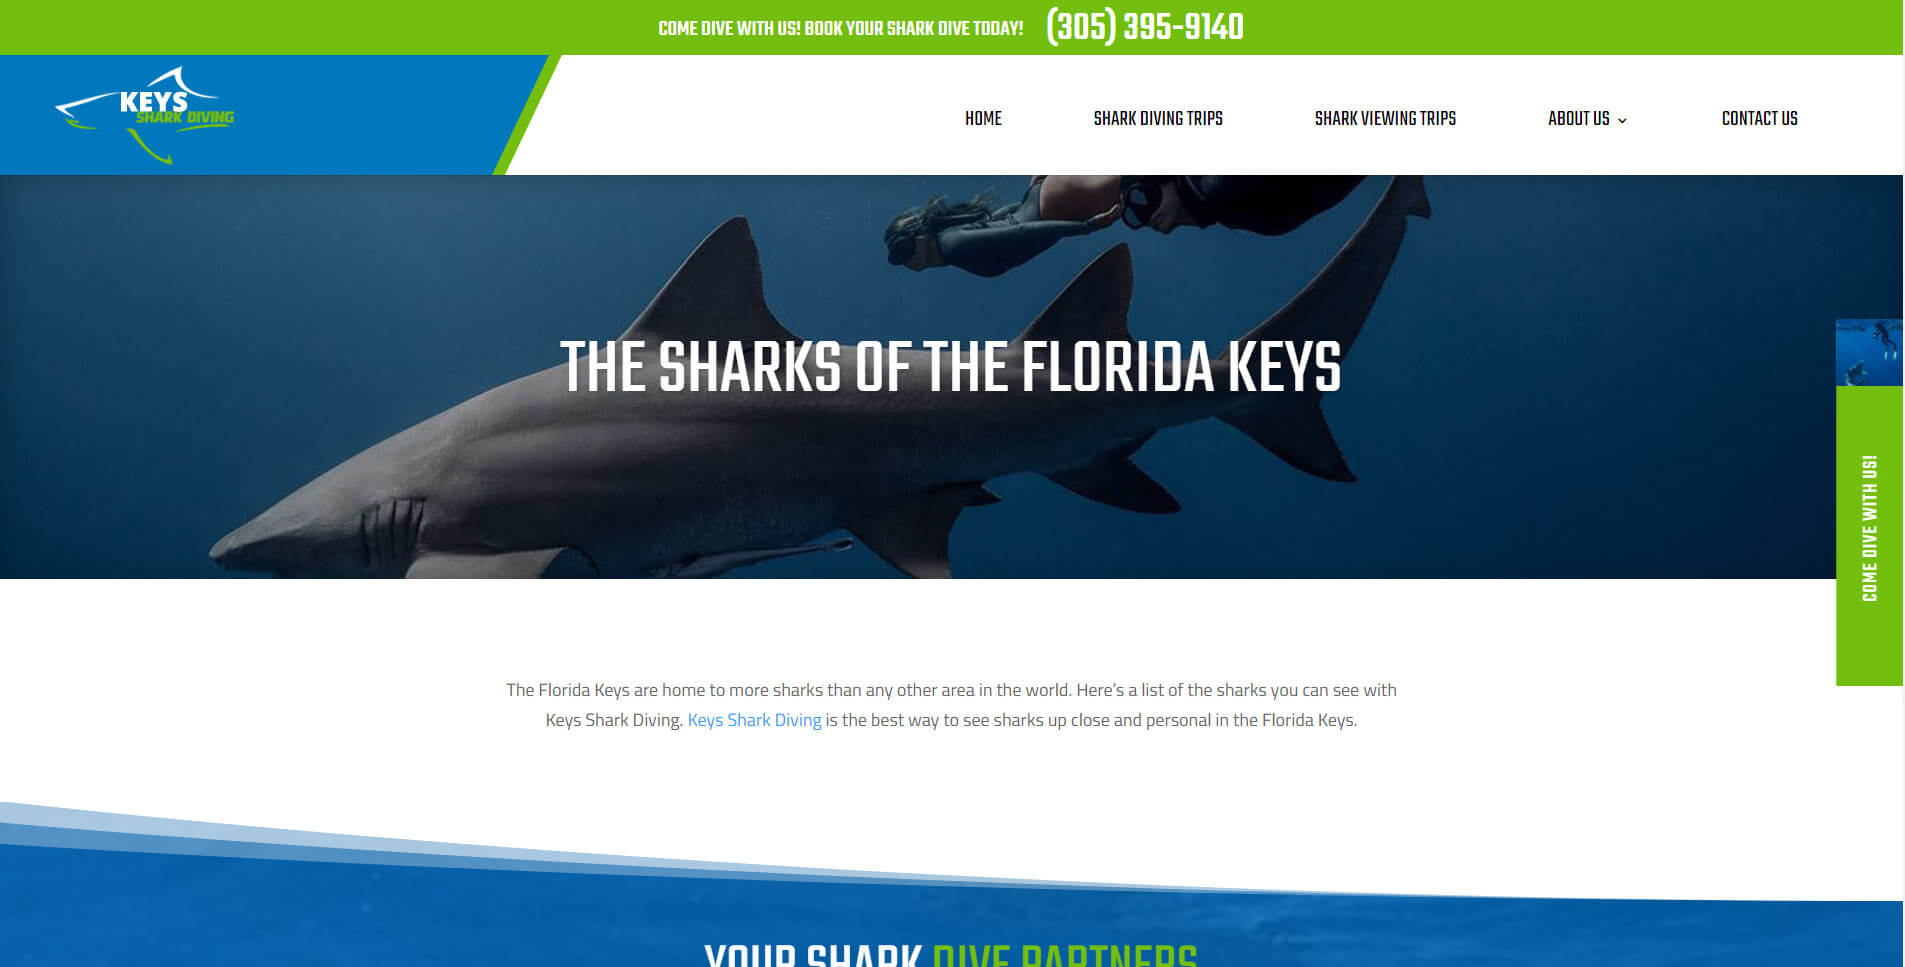 An image of the meet the sharks page of Keys Shark Diving, website created by Not Fade Away Marketing